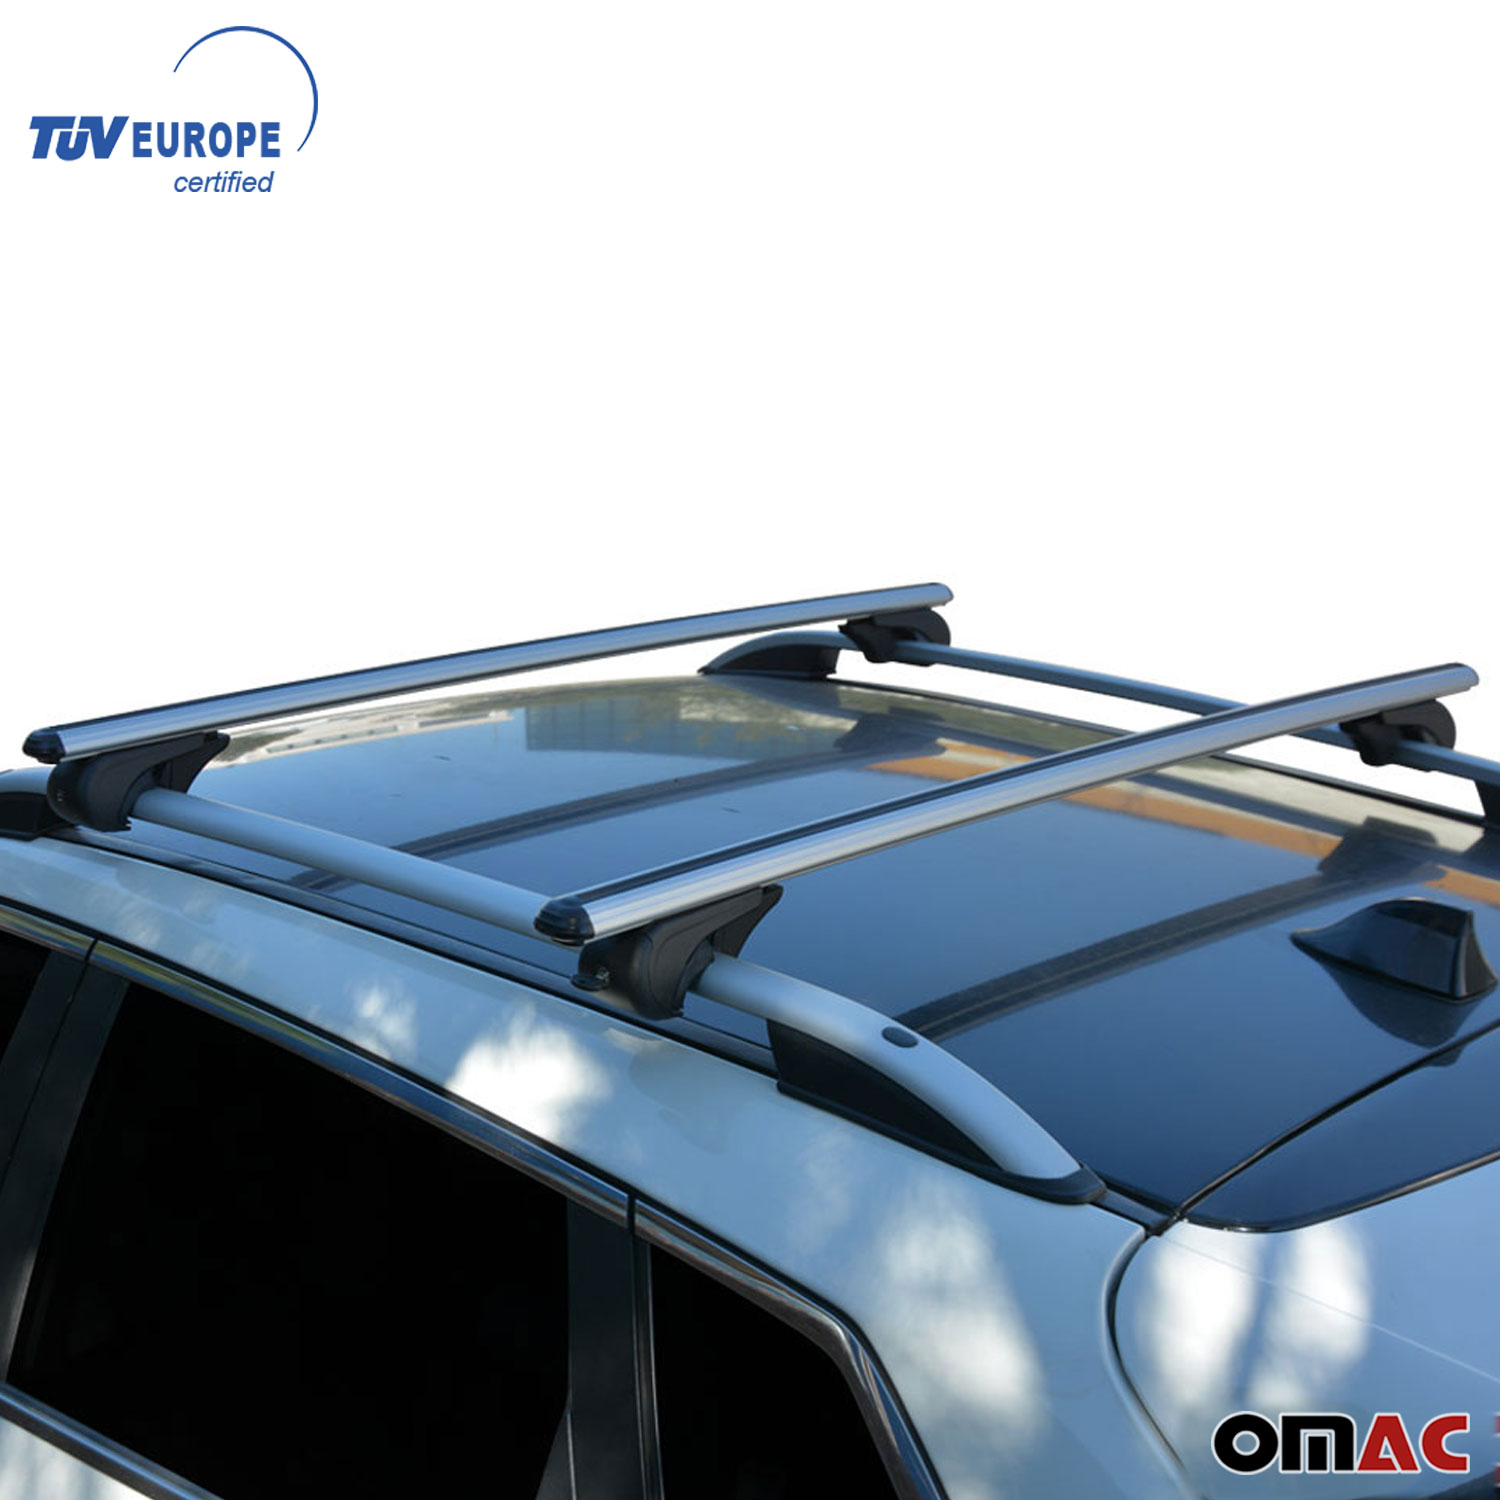 Roof Rack Cross Bars Luggage Carrier Silver For Volvo V70 2007-2019